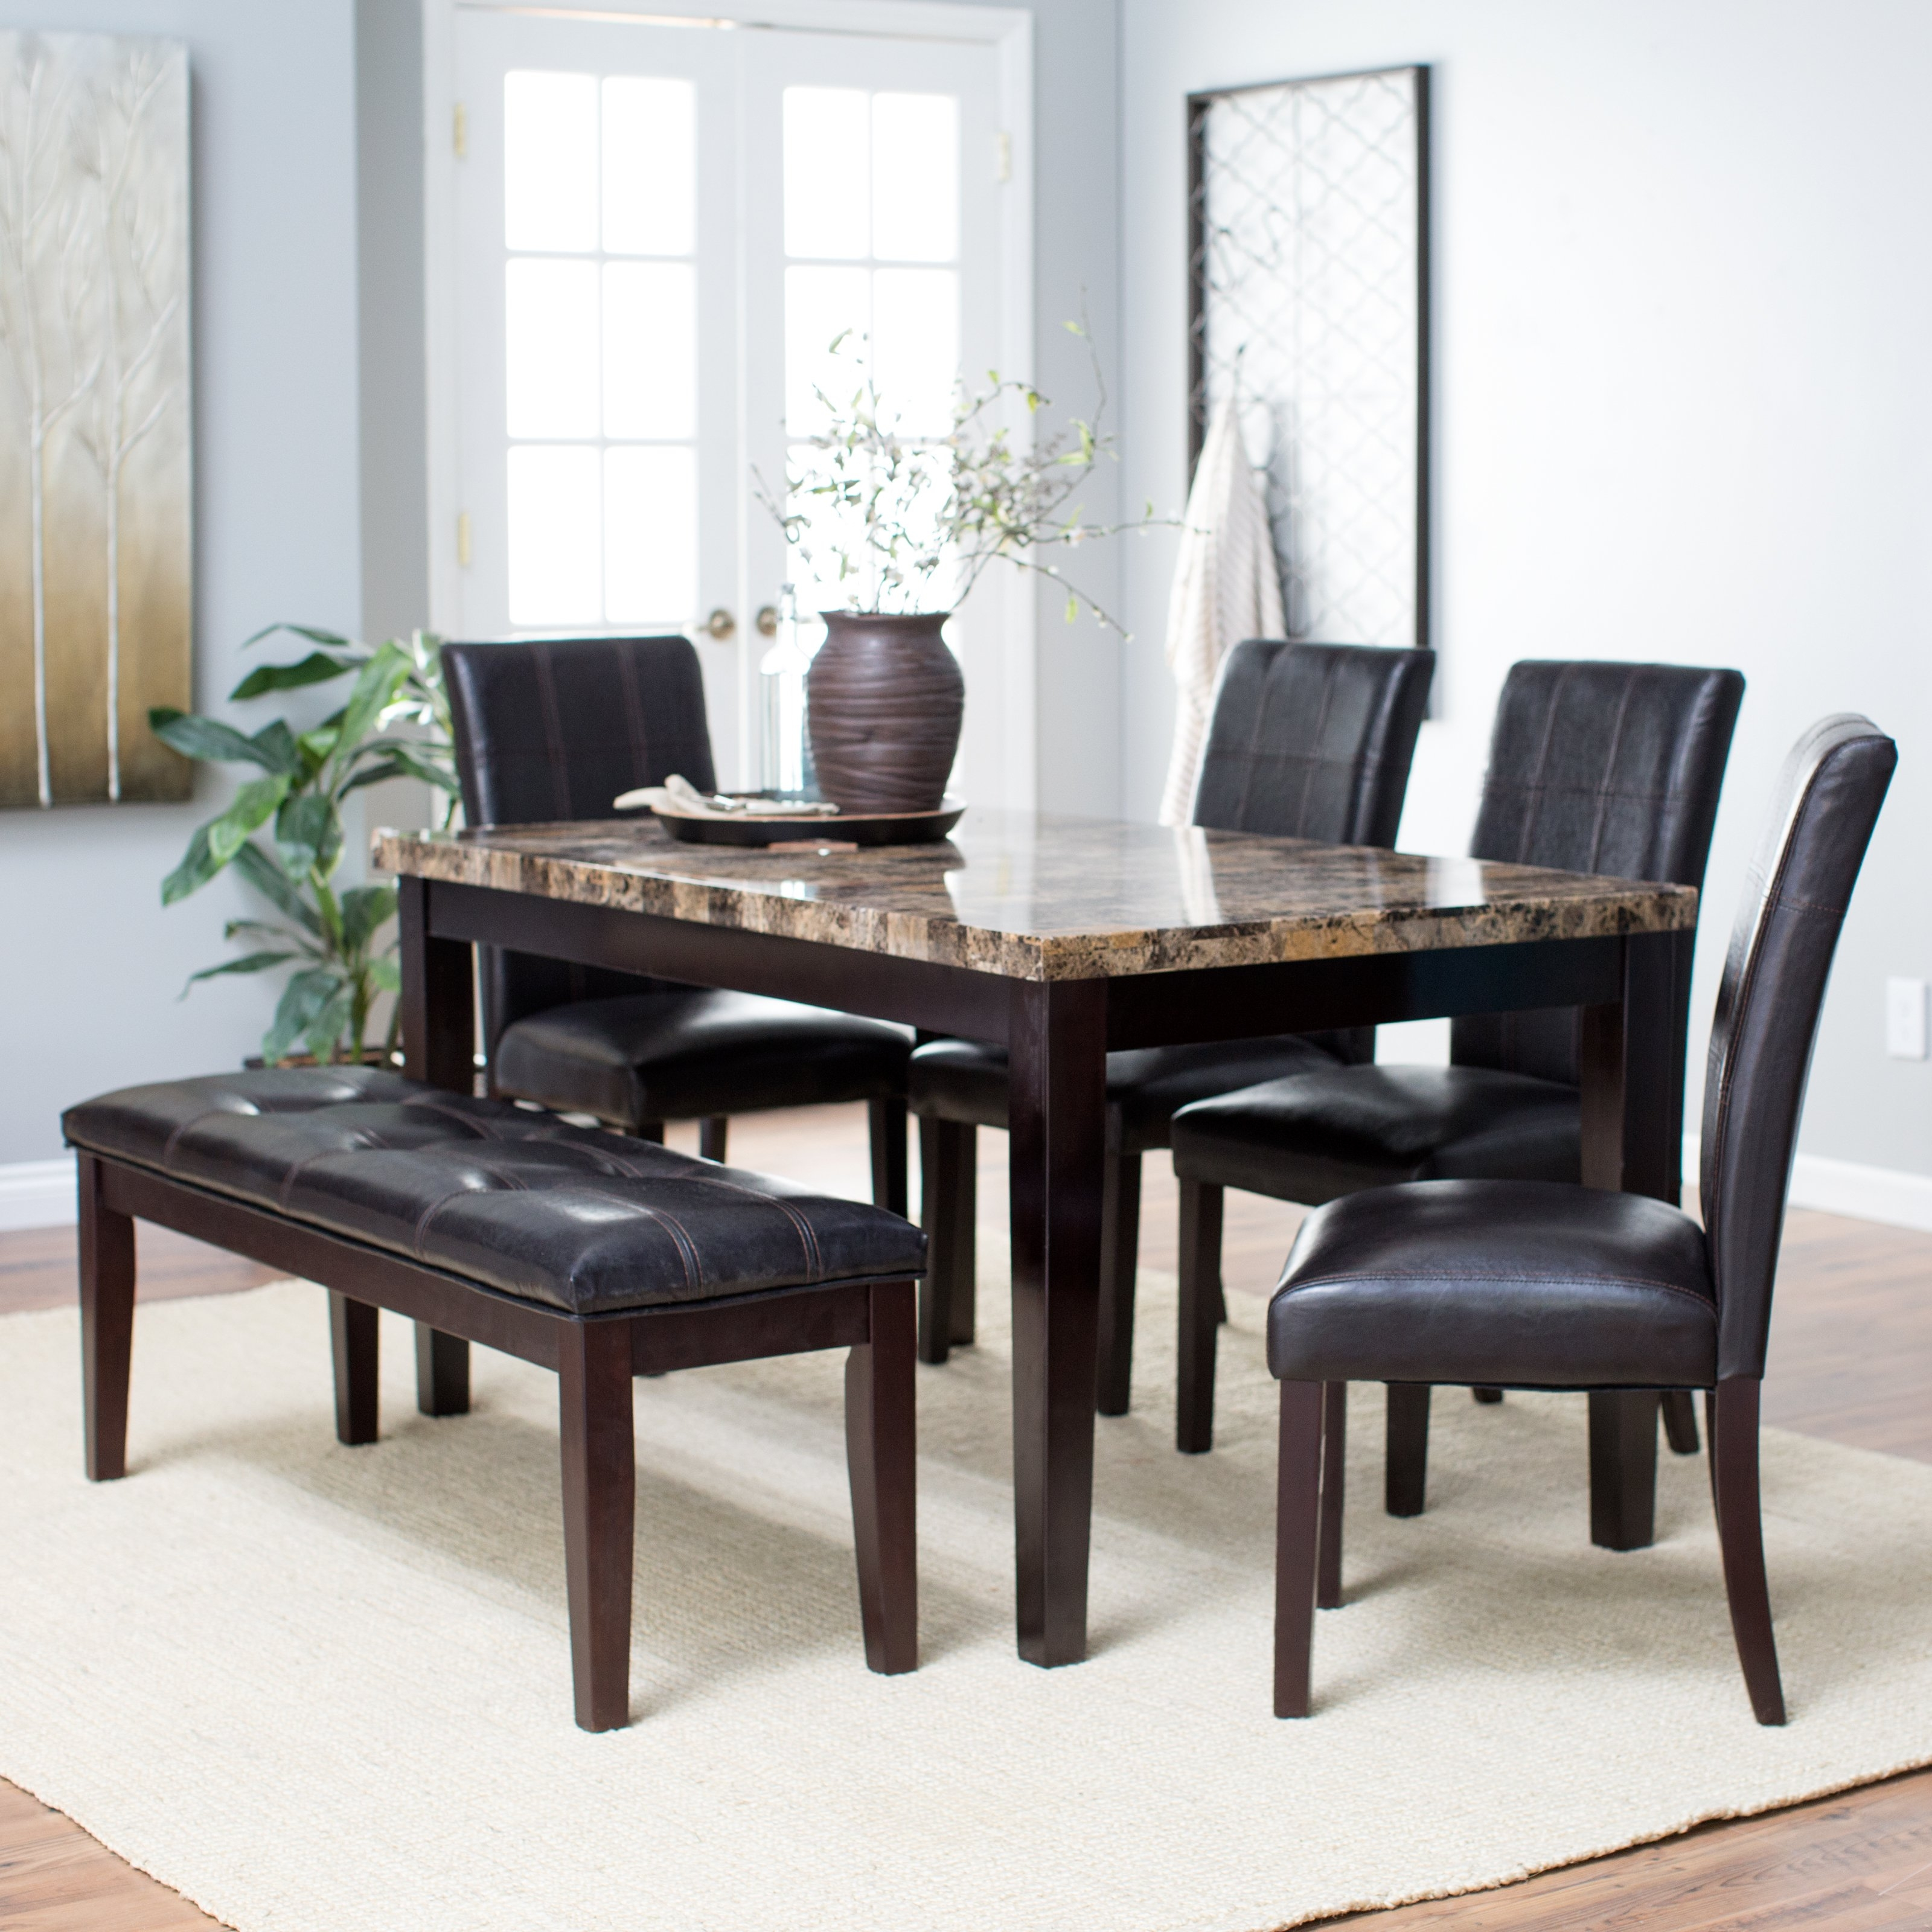 Kitchen Table Set With Bench And Chairs